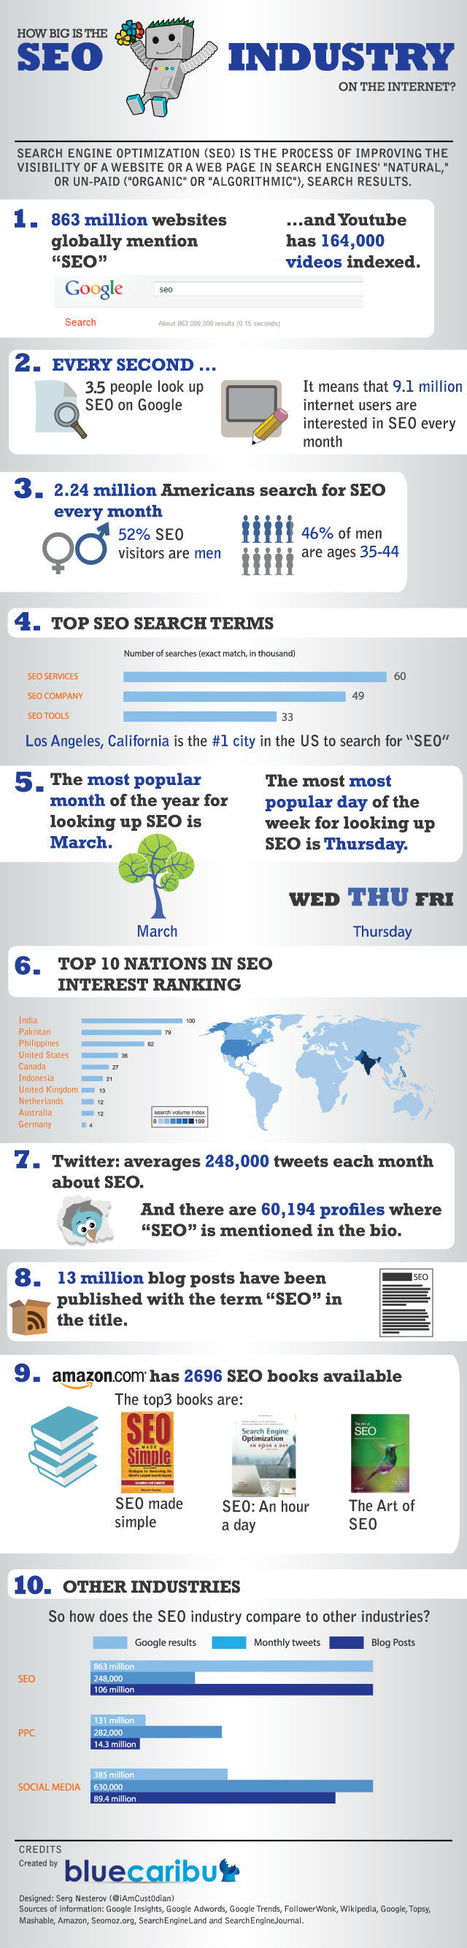 Just How Interested Is the World in SEO? [INFOGRAPHIC] | MarketingHits | Scoop.it